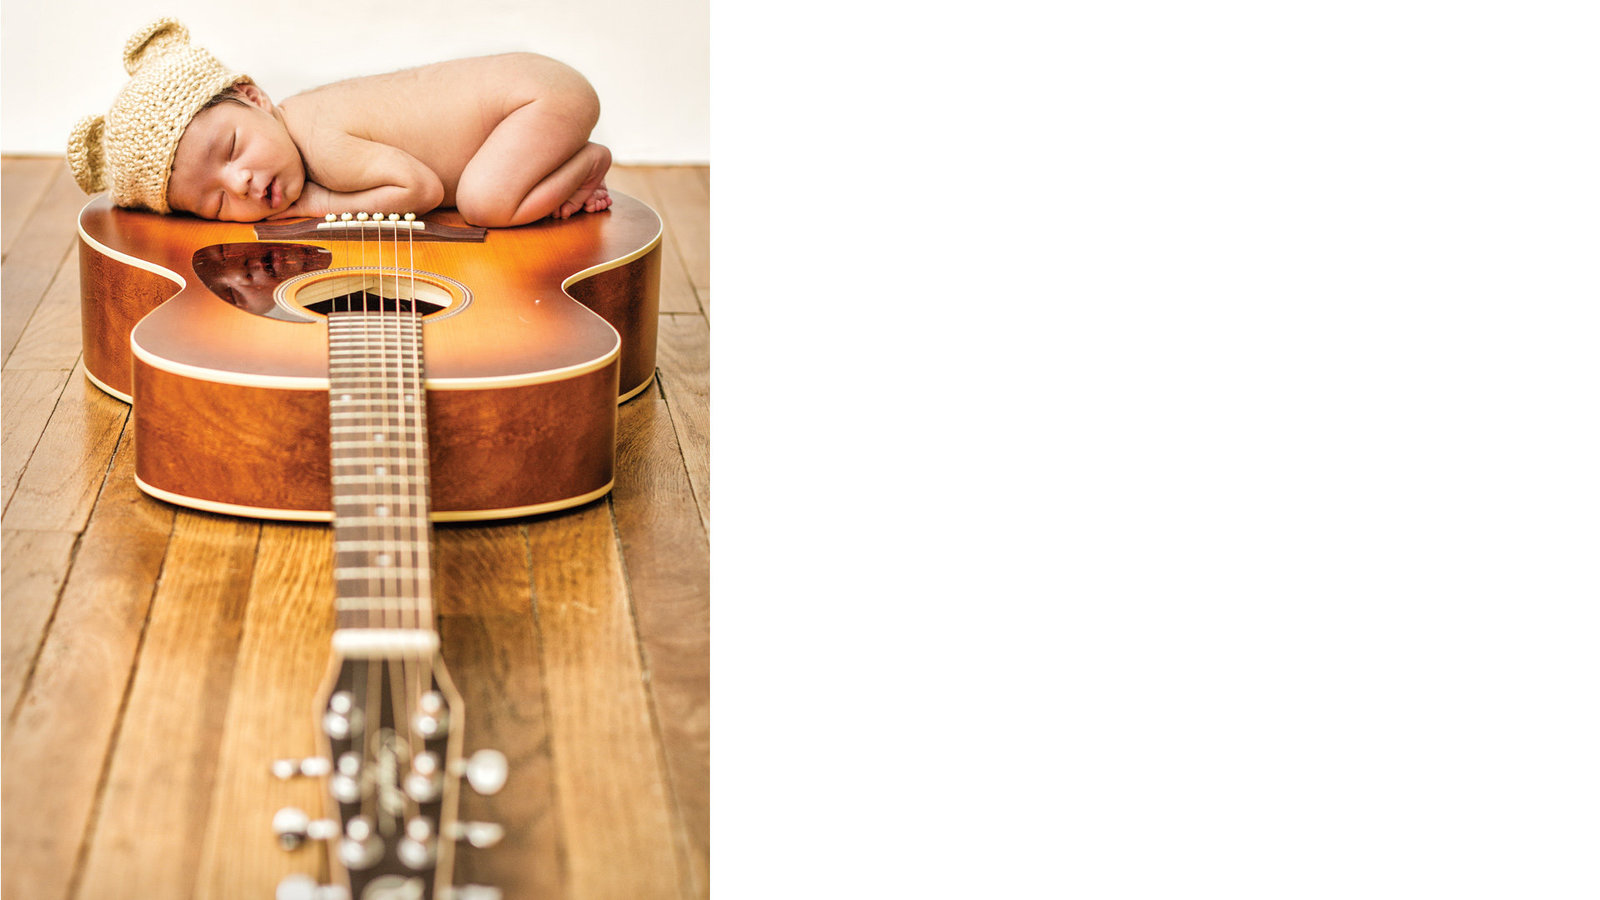 cecilia_newborn_photography_guitar